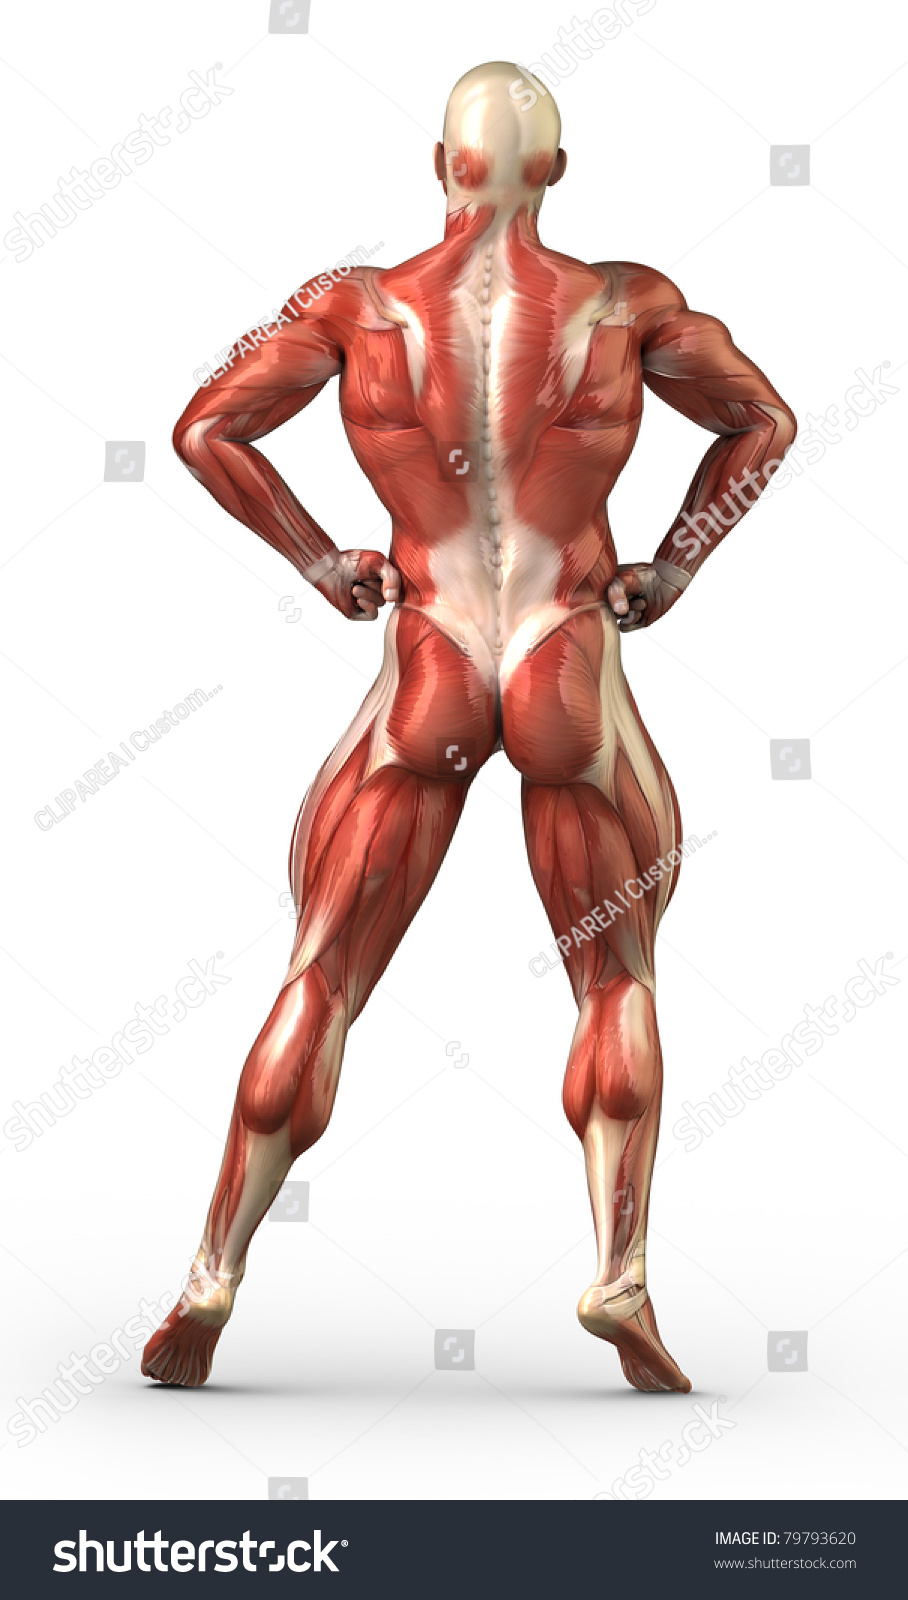 Male Back Anatomy Muscular System Bodybuilder Stock Illustration ...